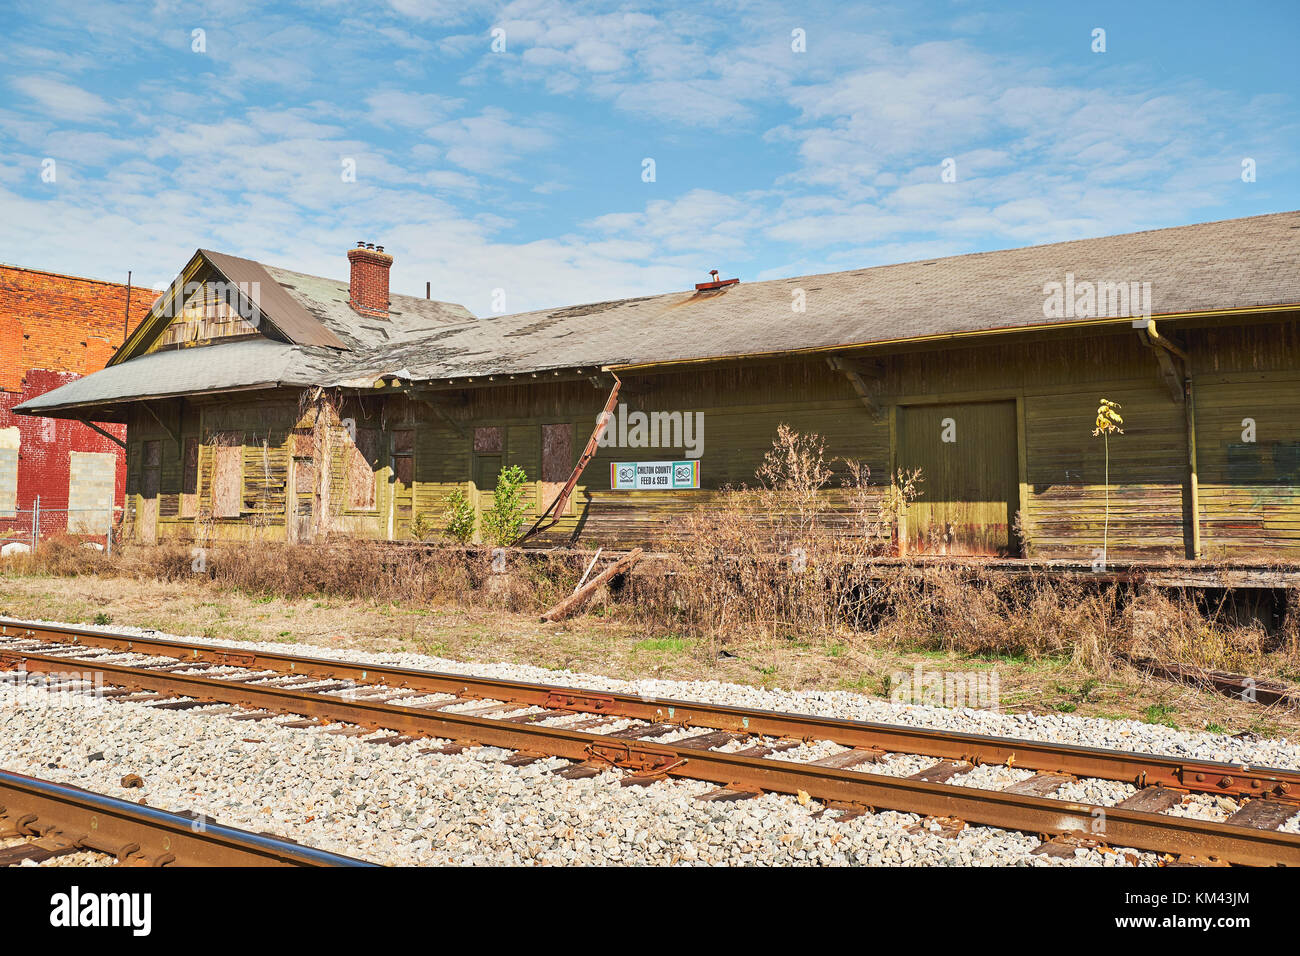 Old abandoned railroad freight depot repurposed into a warehouse for Chilton County Feed and Seed, in rural Clanton - Stock Image